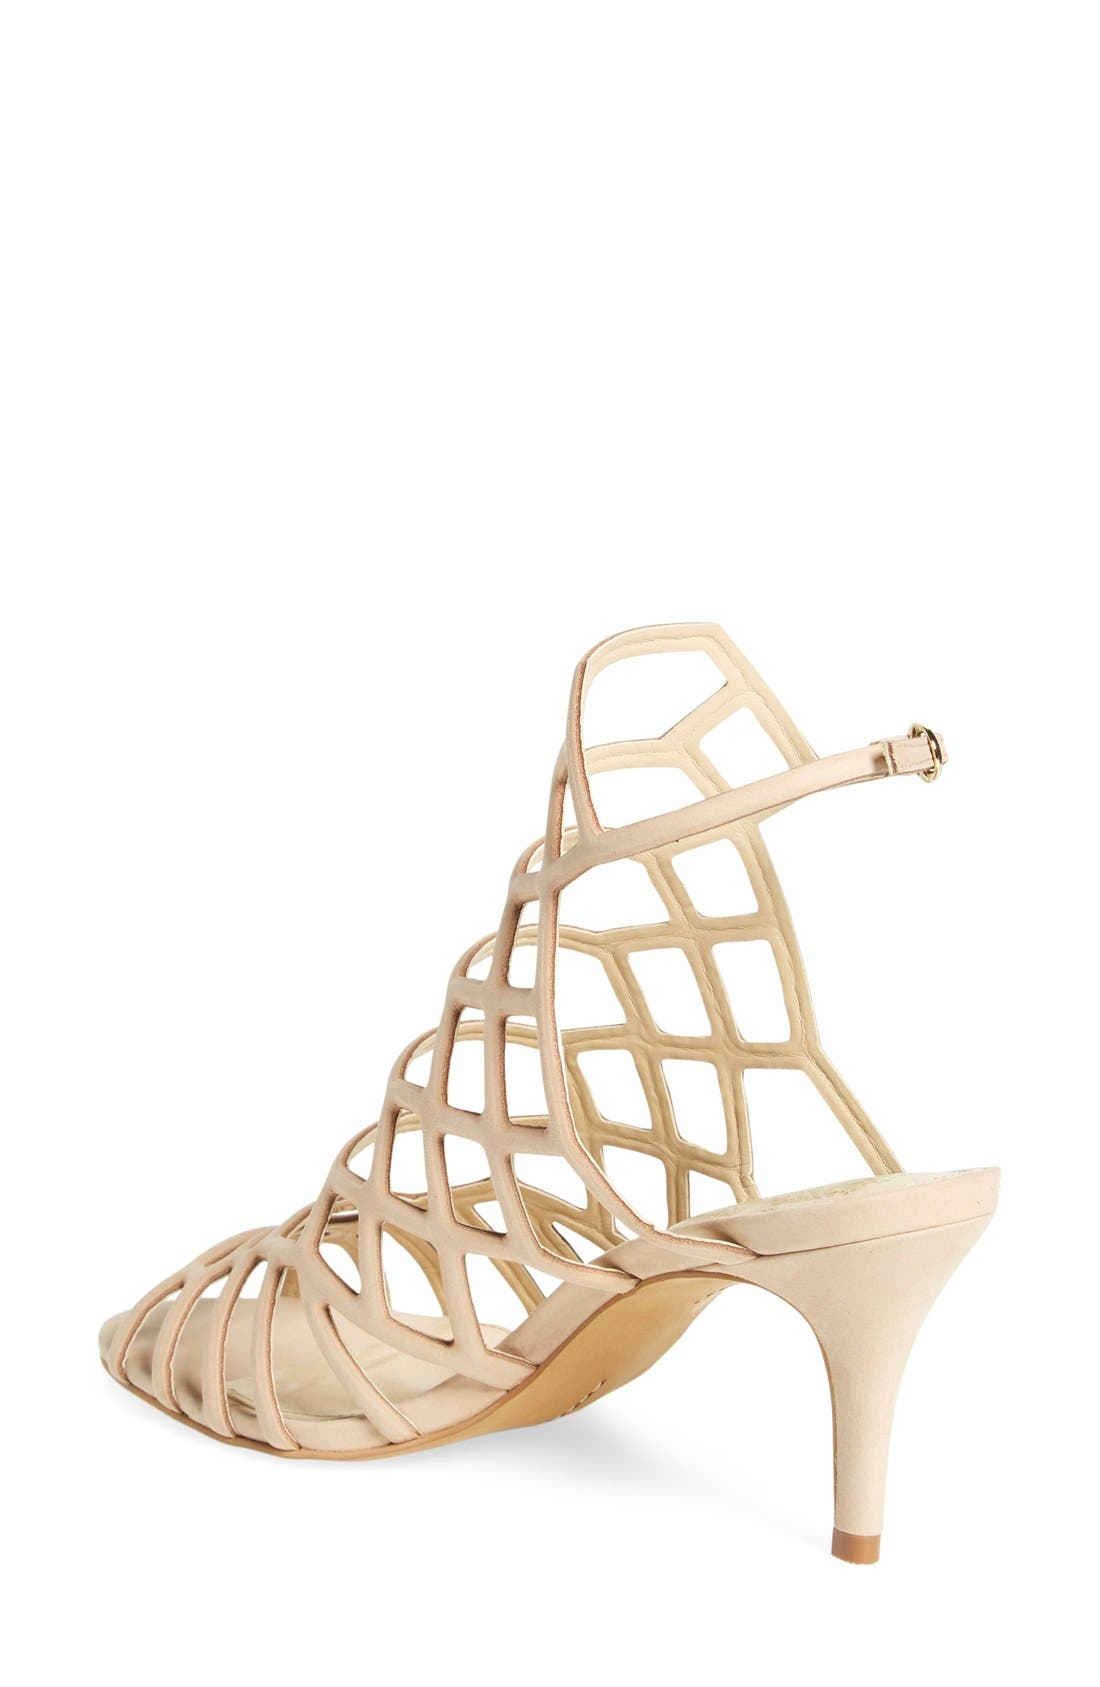 'Paxton' Slingback Sandal,                             Alternate thumbnail 2, color,                             Nude Leather